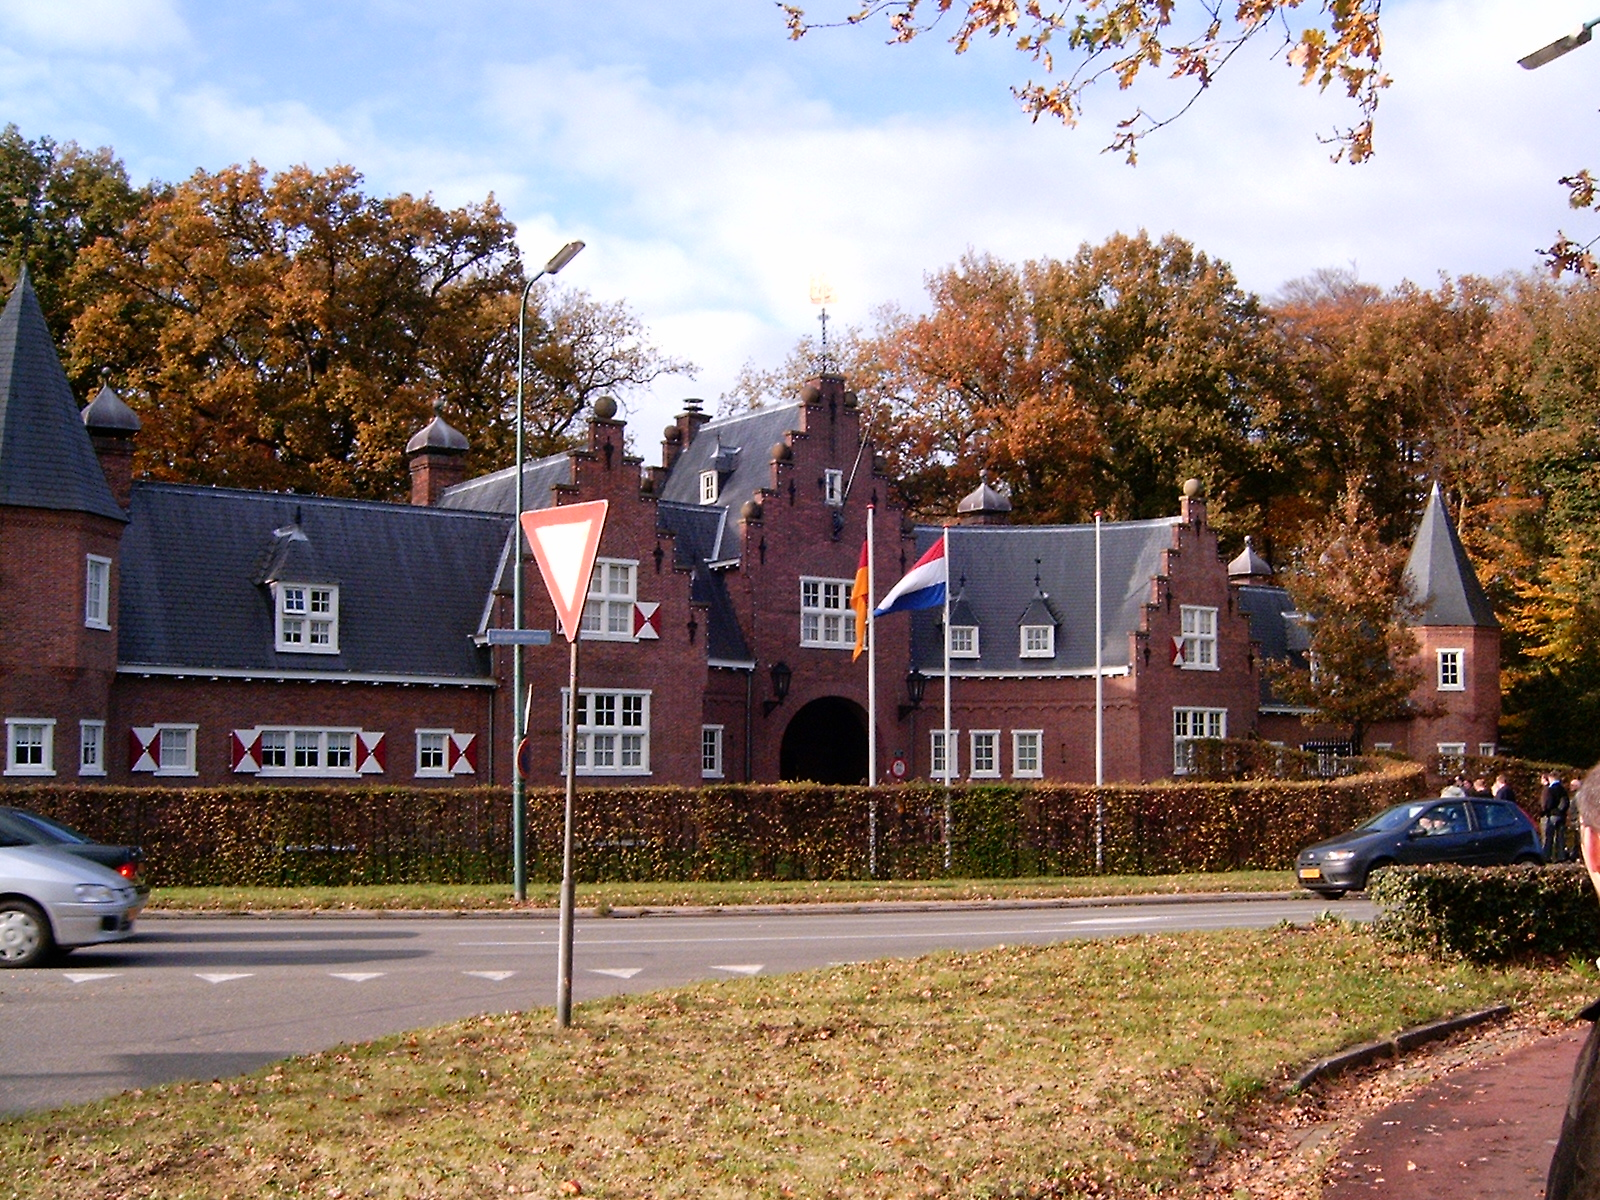 The gatehouse of the castle of Doorn